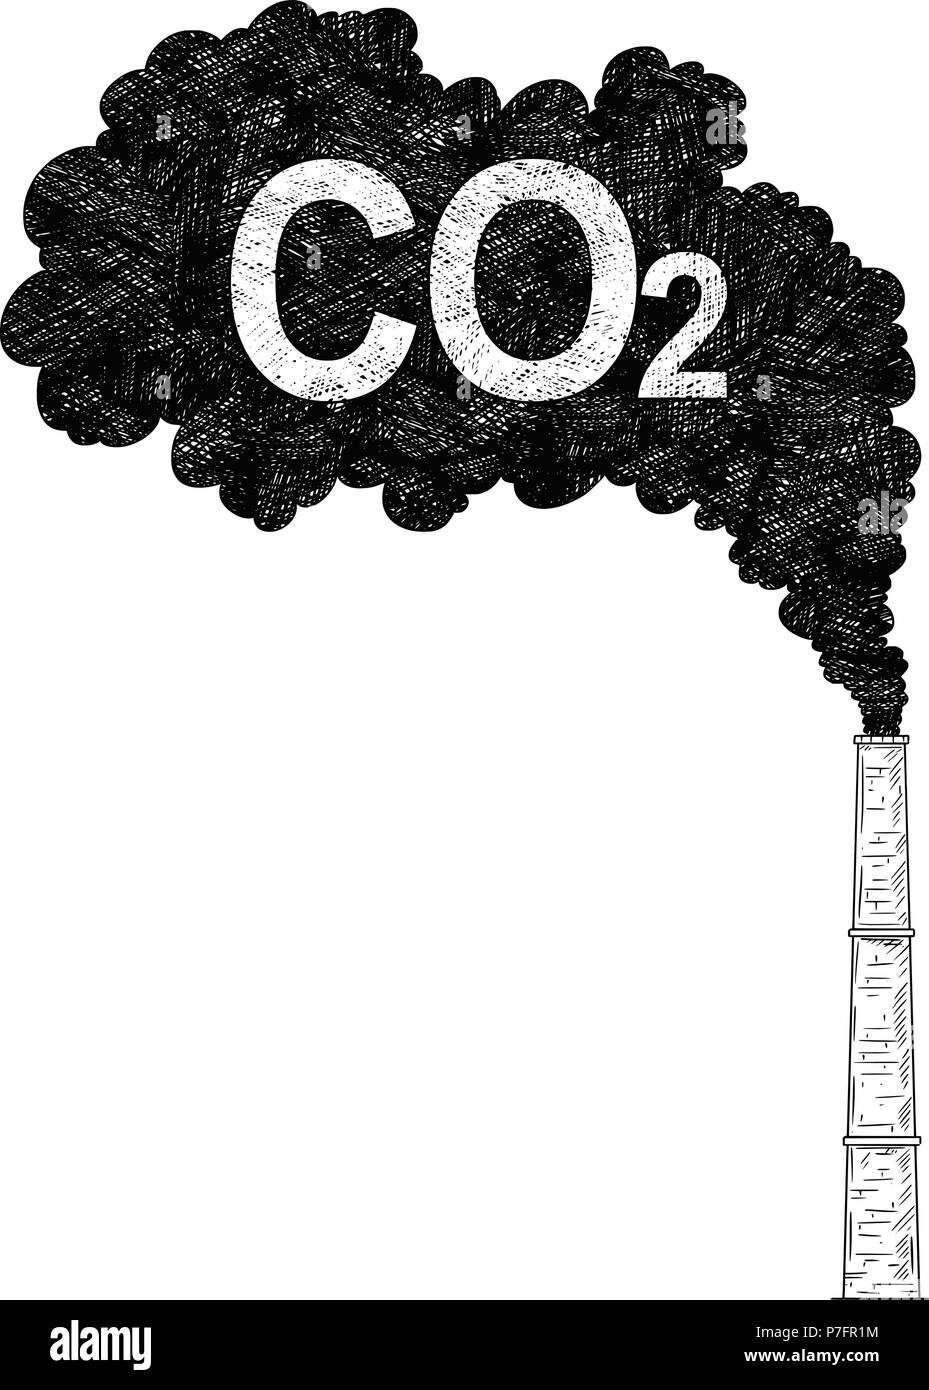 Vector Artistic Drawing Illustration of Smokestack, Industry or Factory Air CO2 Pollution - Stock Image